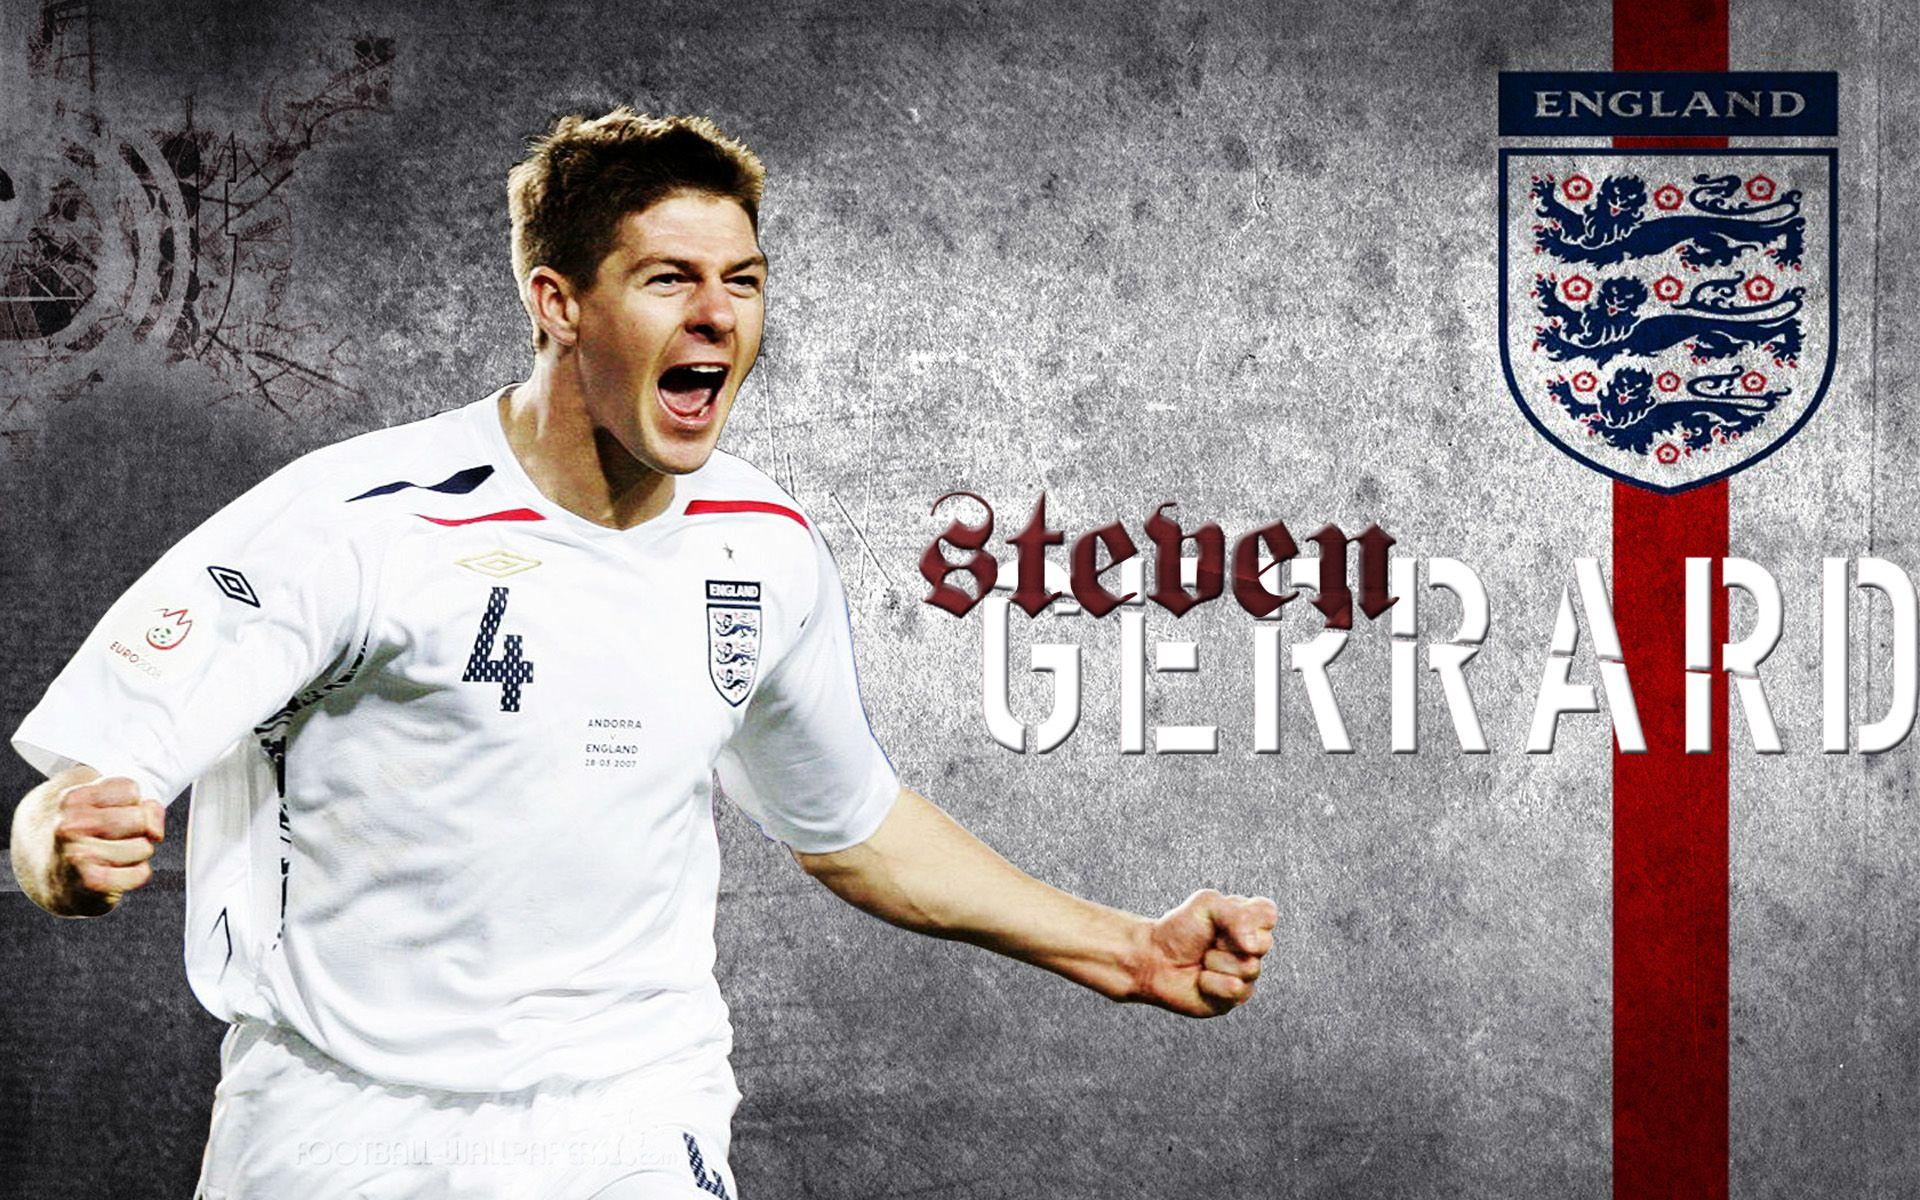 England National Football Team Background 9